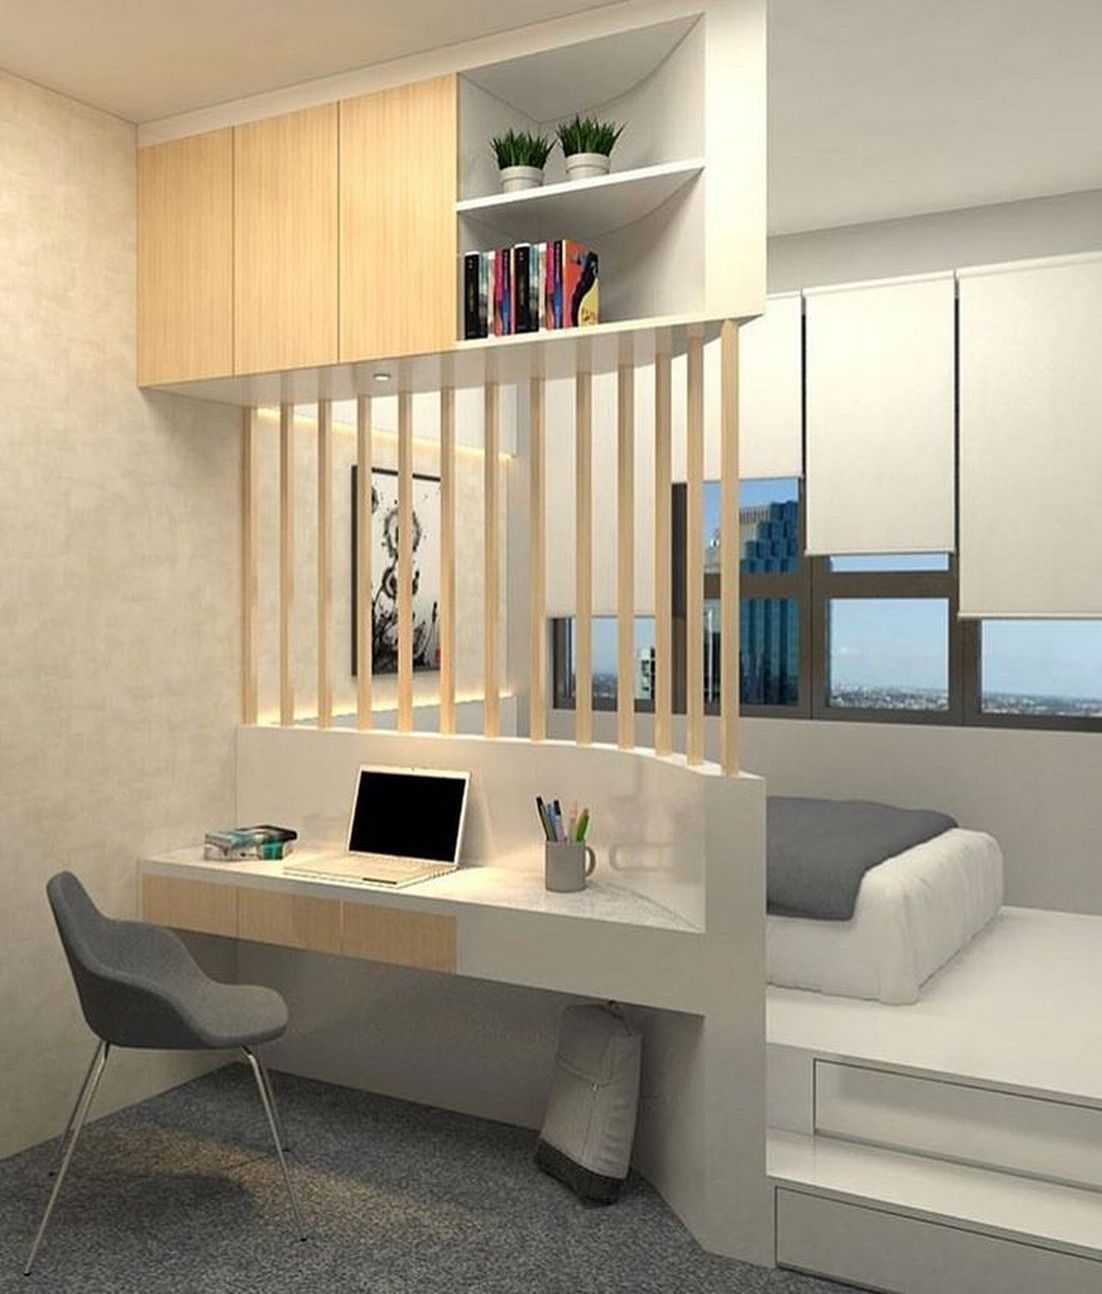 23 amazing tiny house design 2019 1 in 2020 (With images